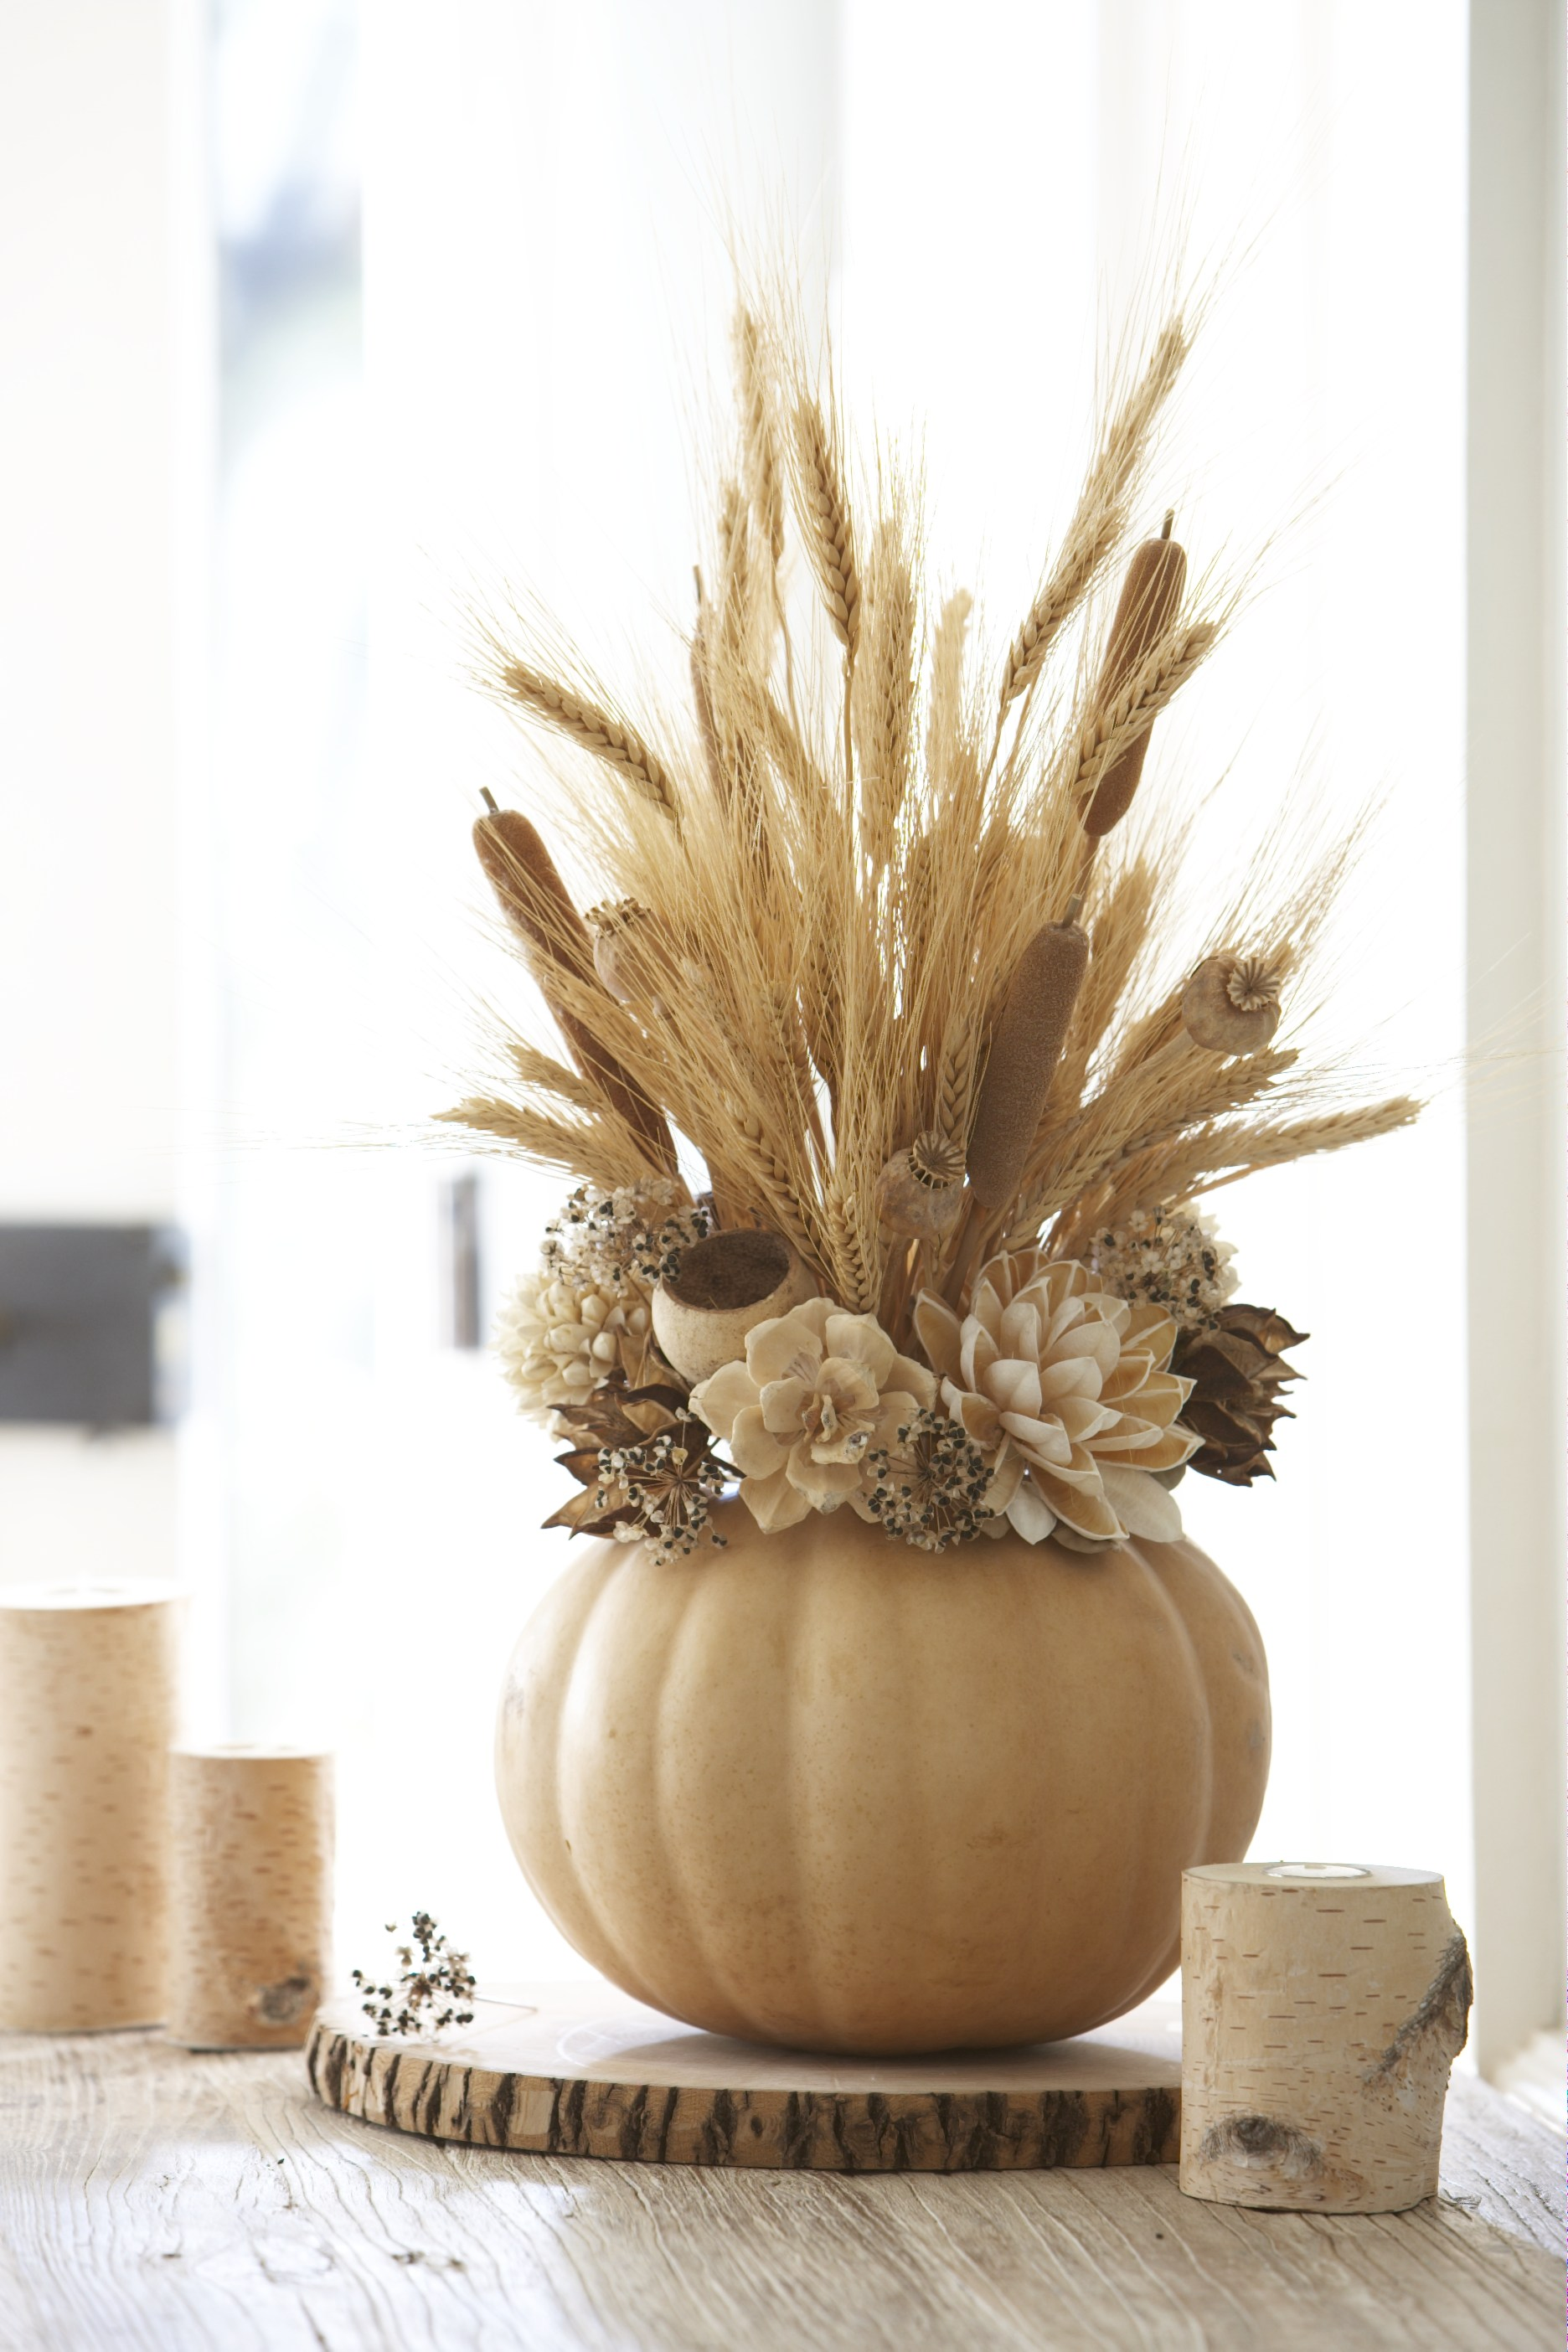 Dried wheat stems and faux flowers in beige and brown tones could be perfect additions to a subtle, natural looking Fall centerpiece.